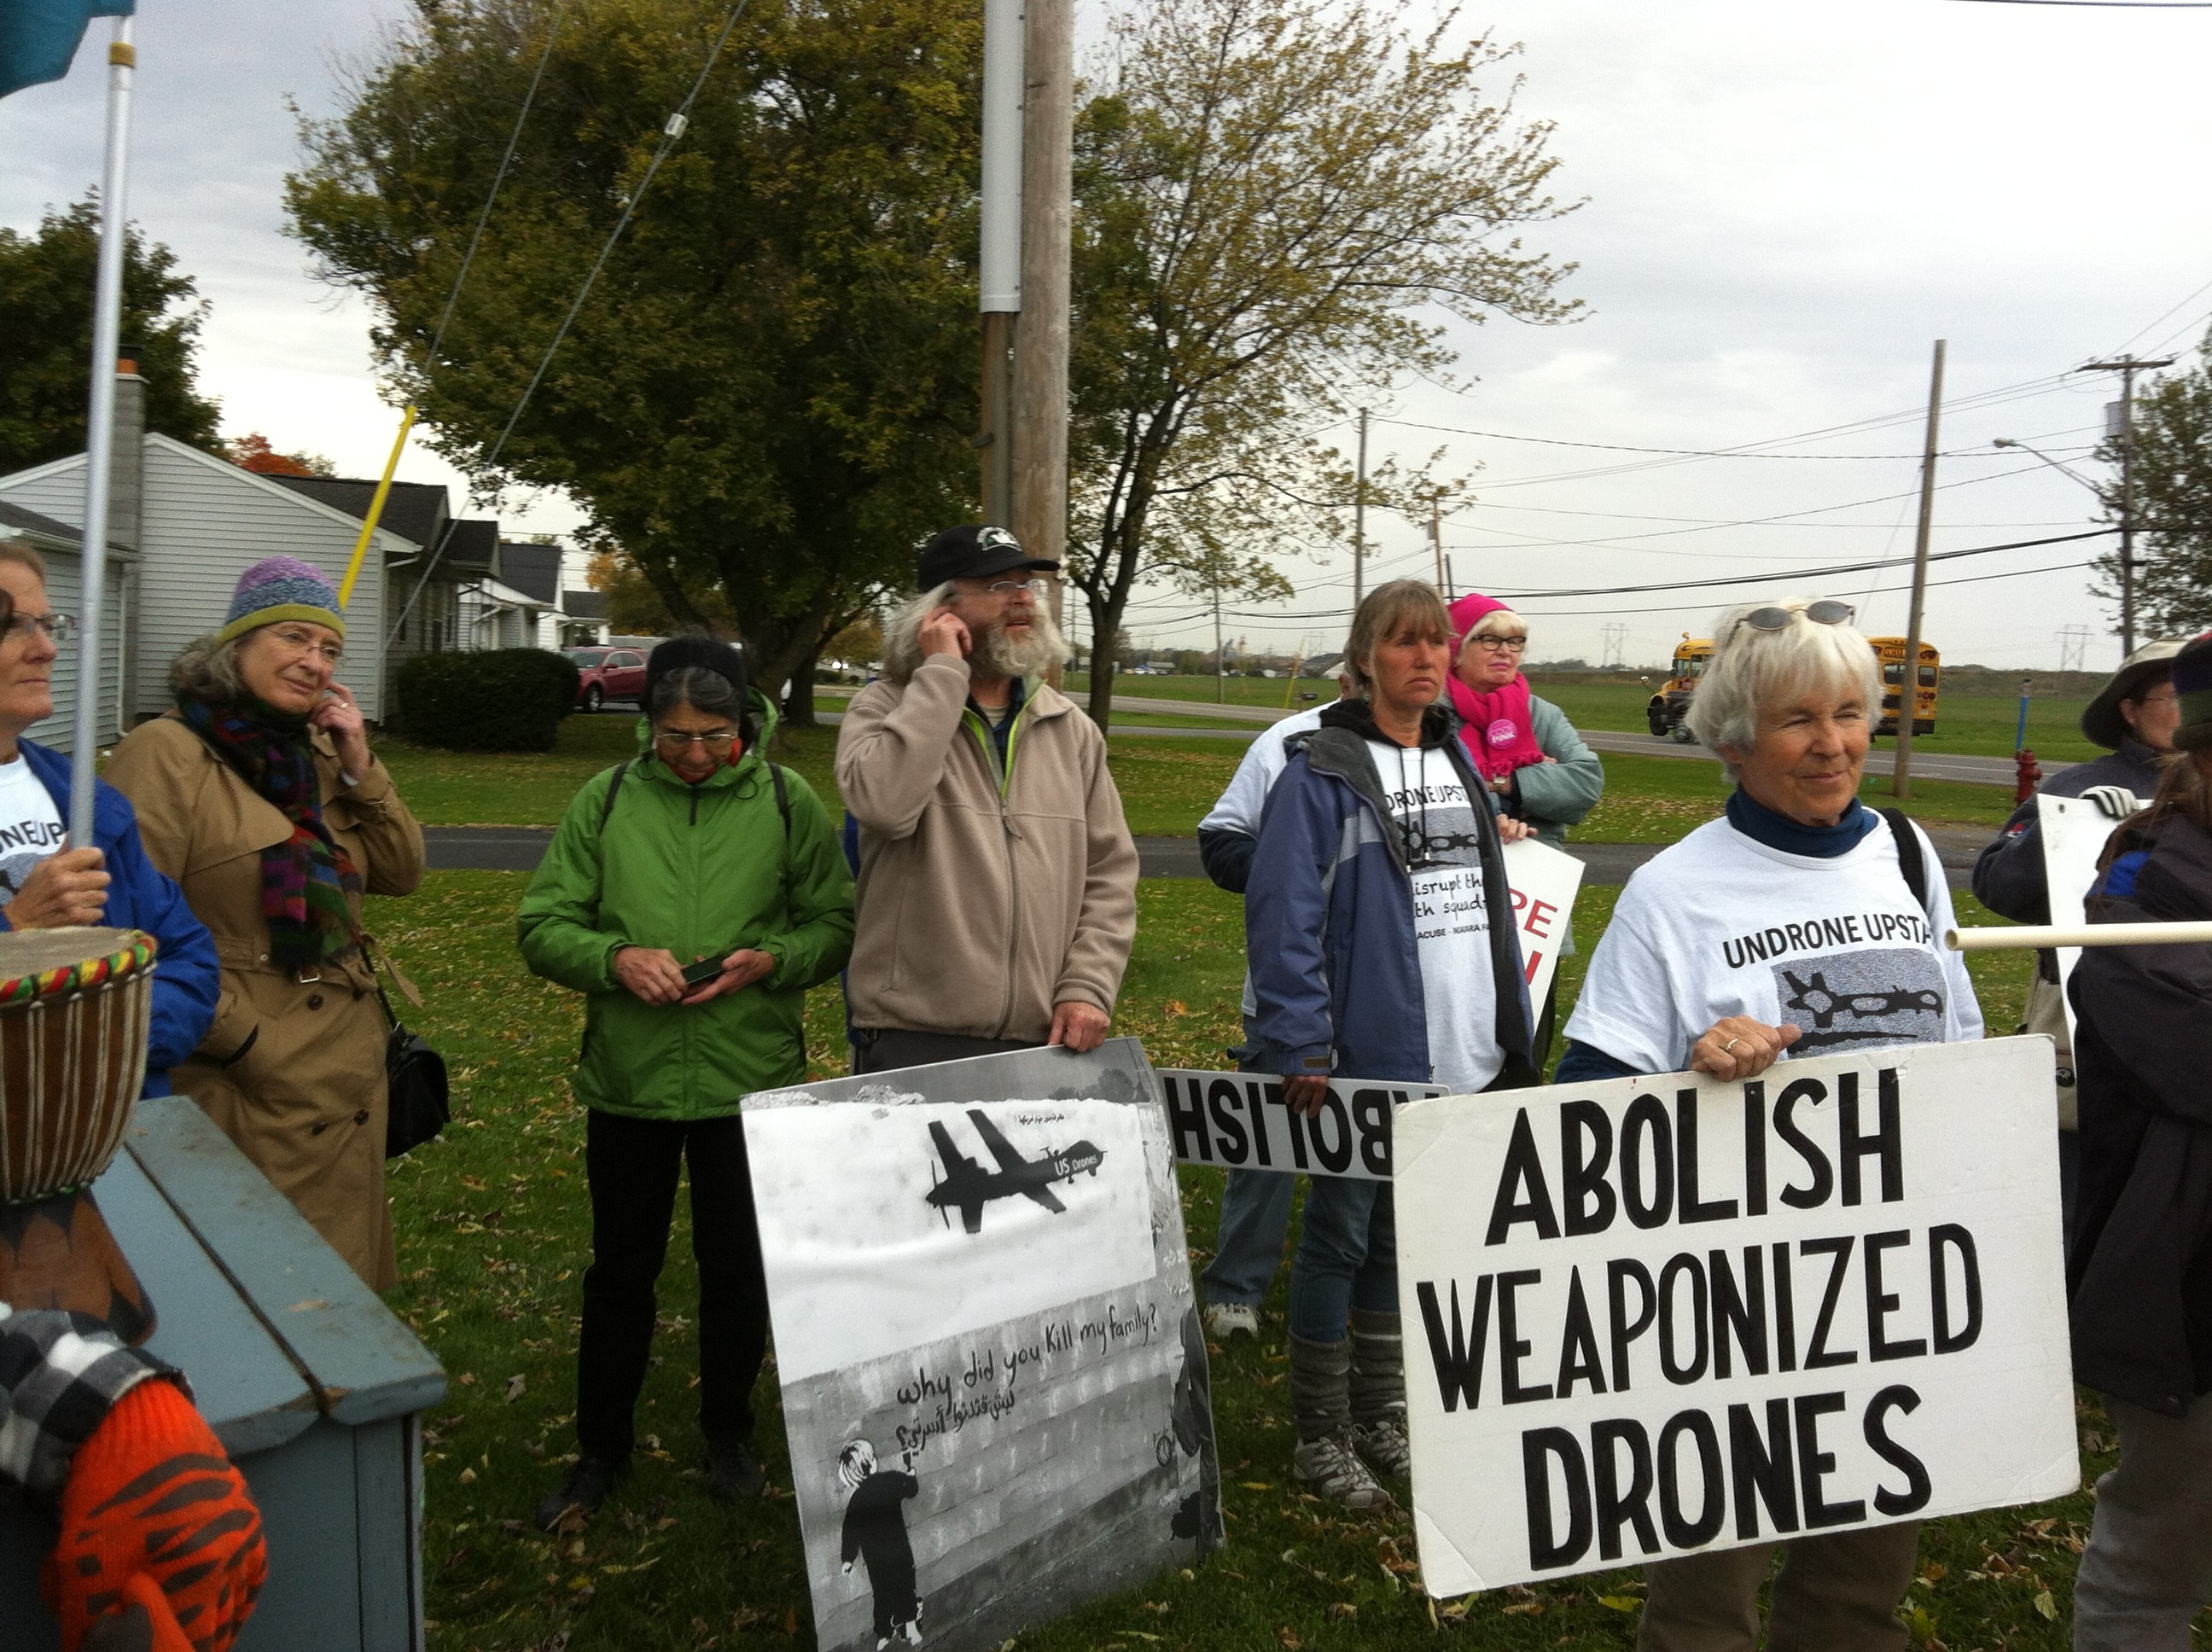 Abolish Weaponized Drones